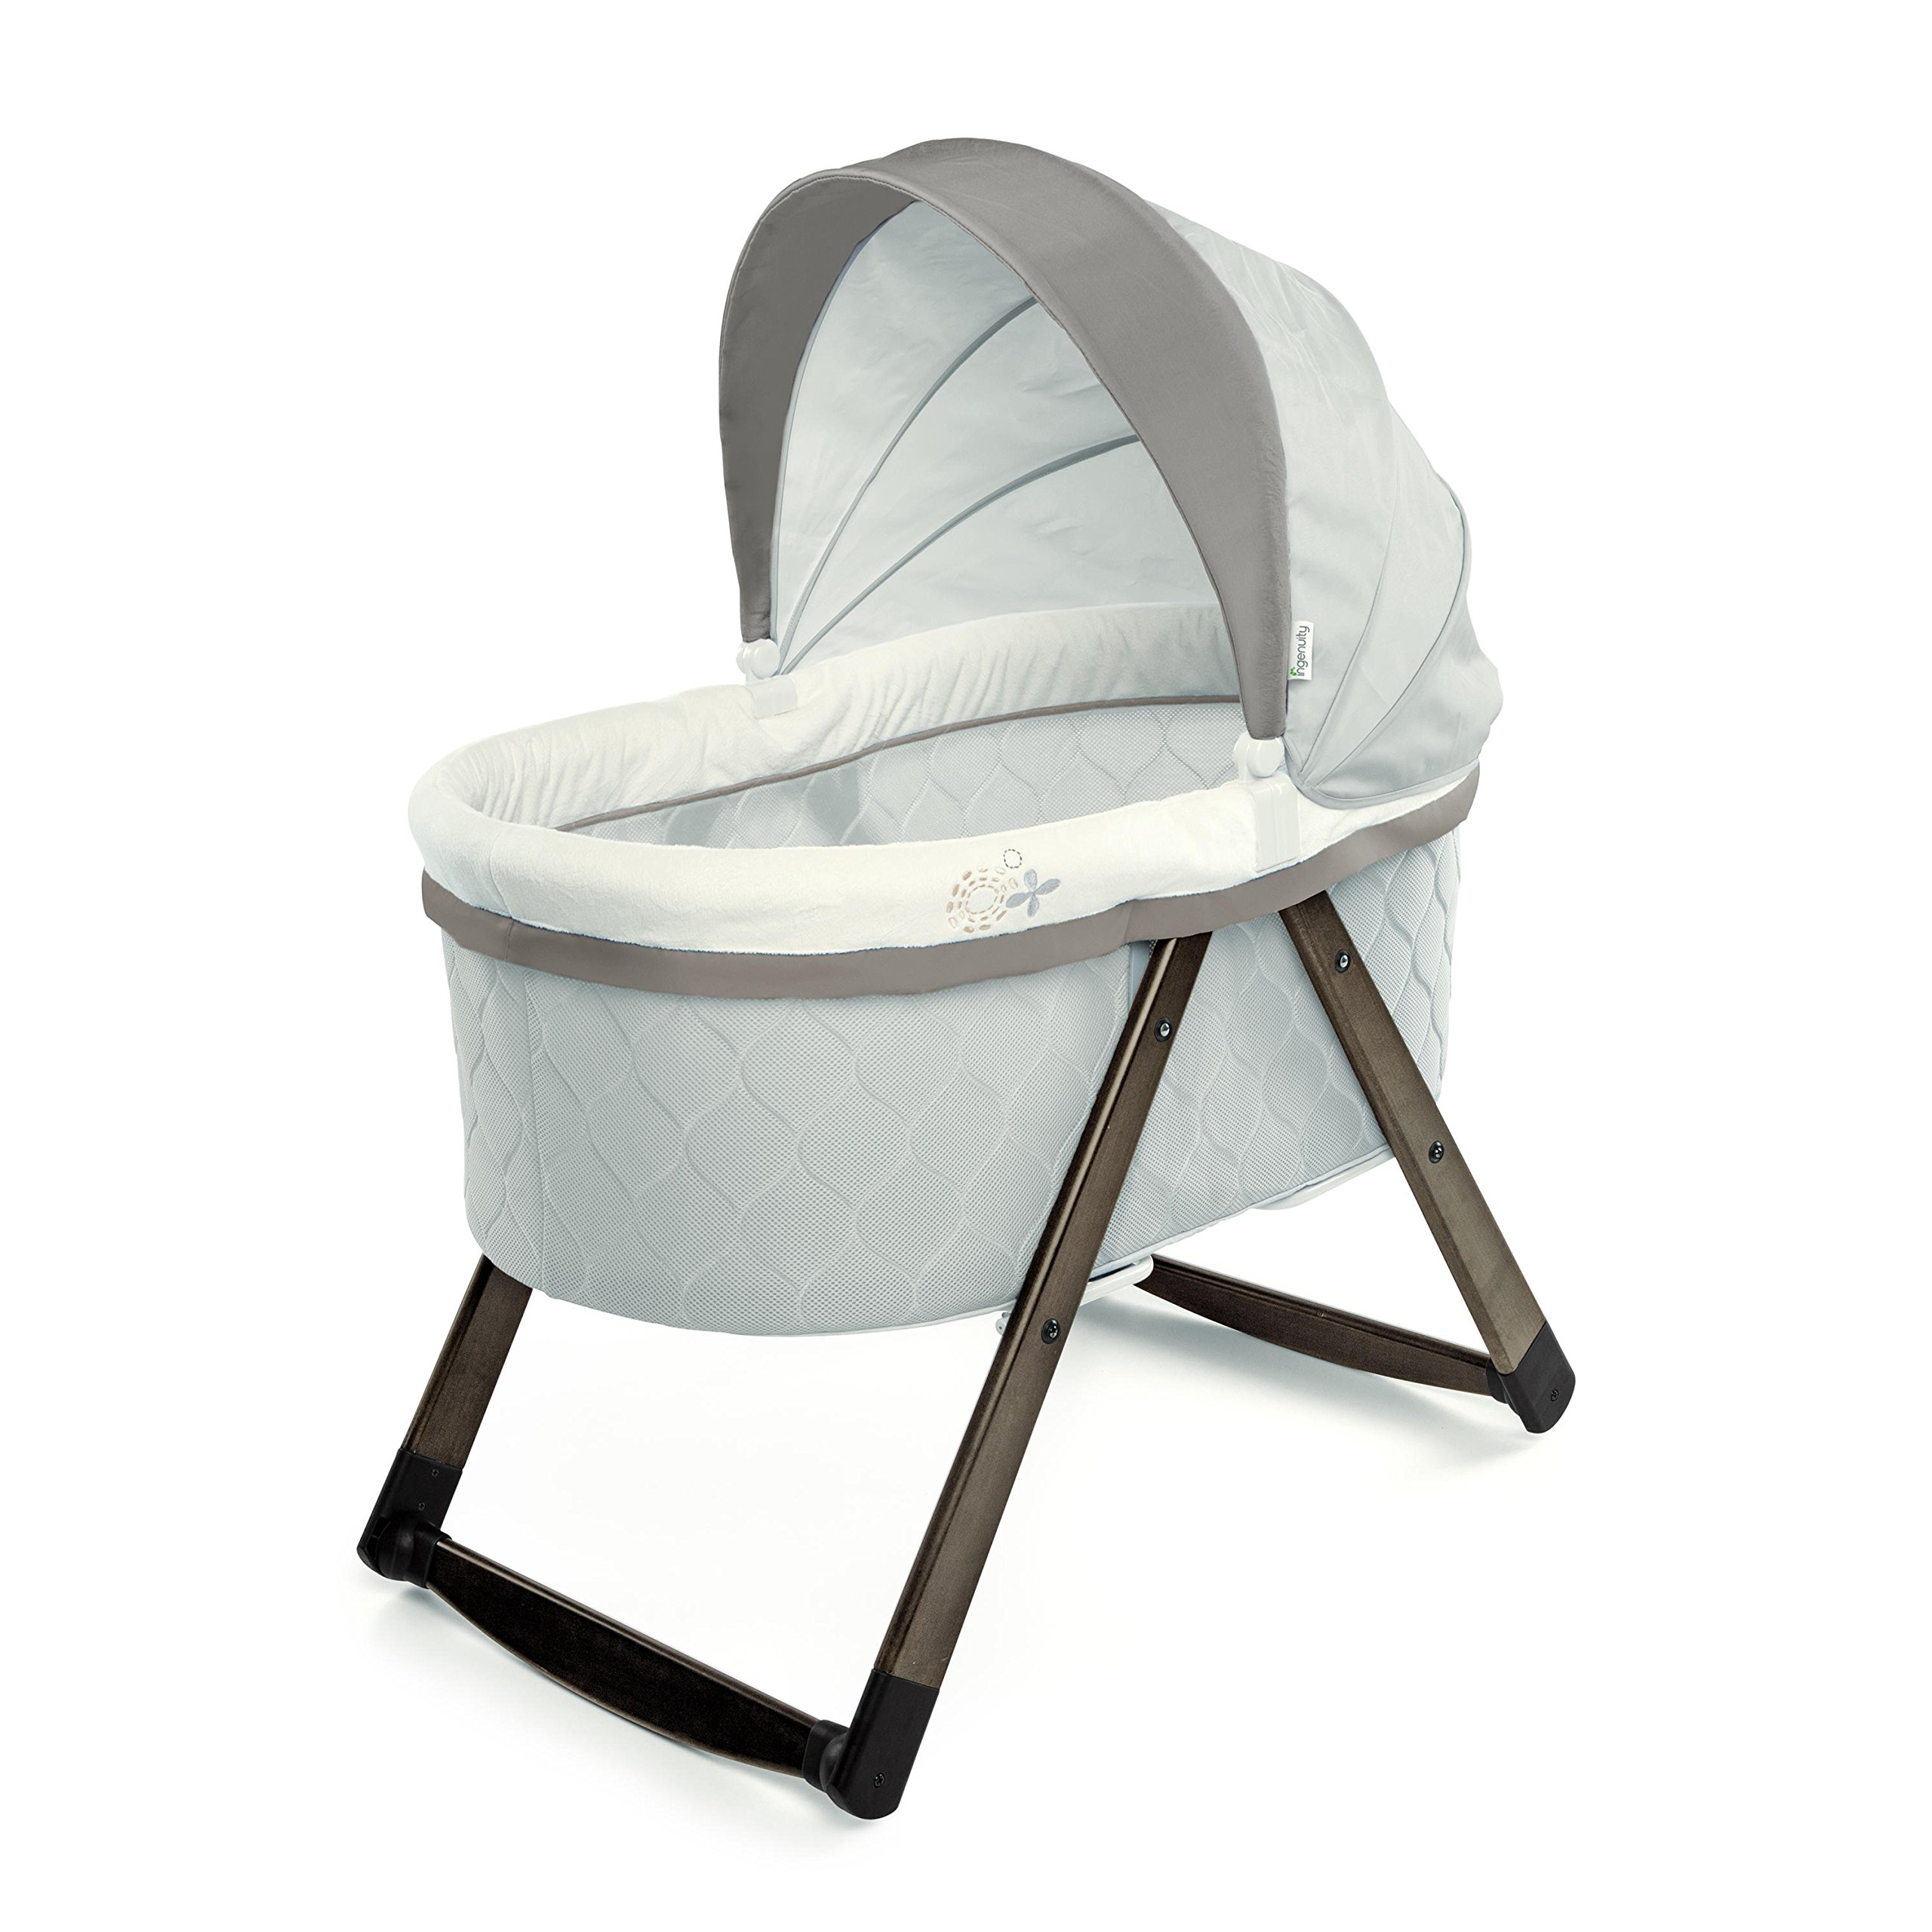 Ingenuity Foldaway Rocking Wood Bassinet - Carrington by Ingenuity